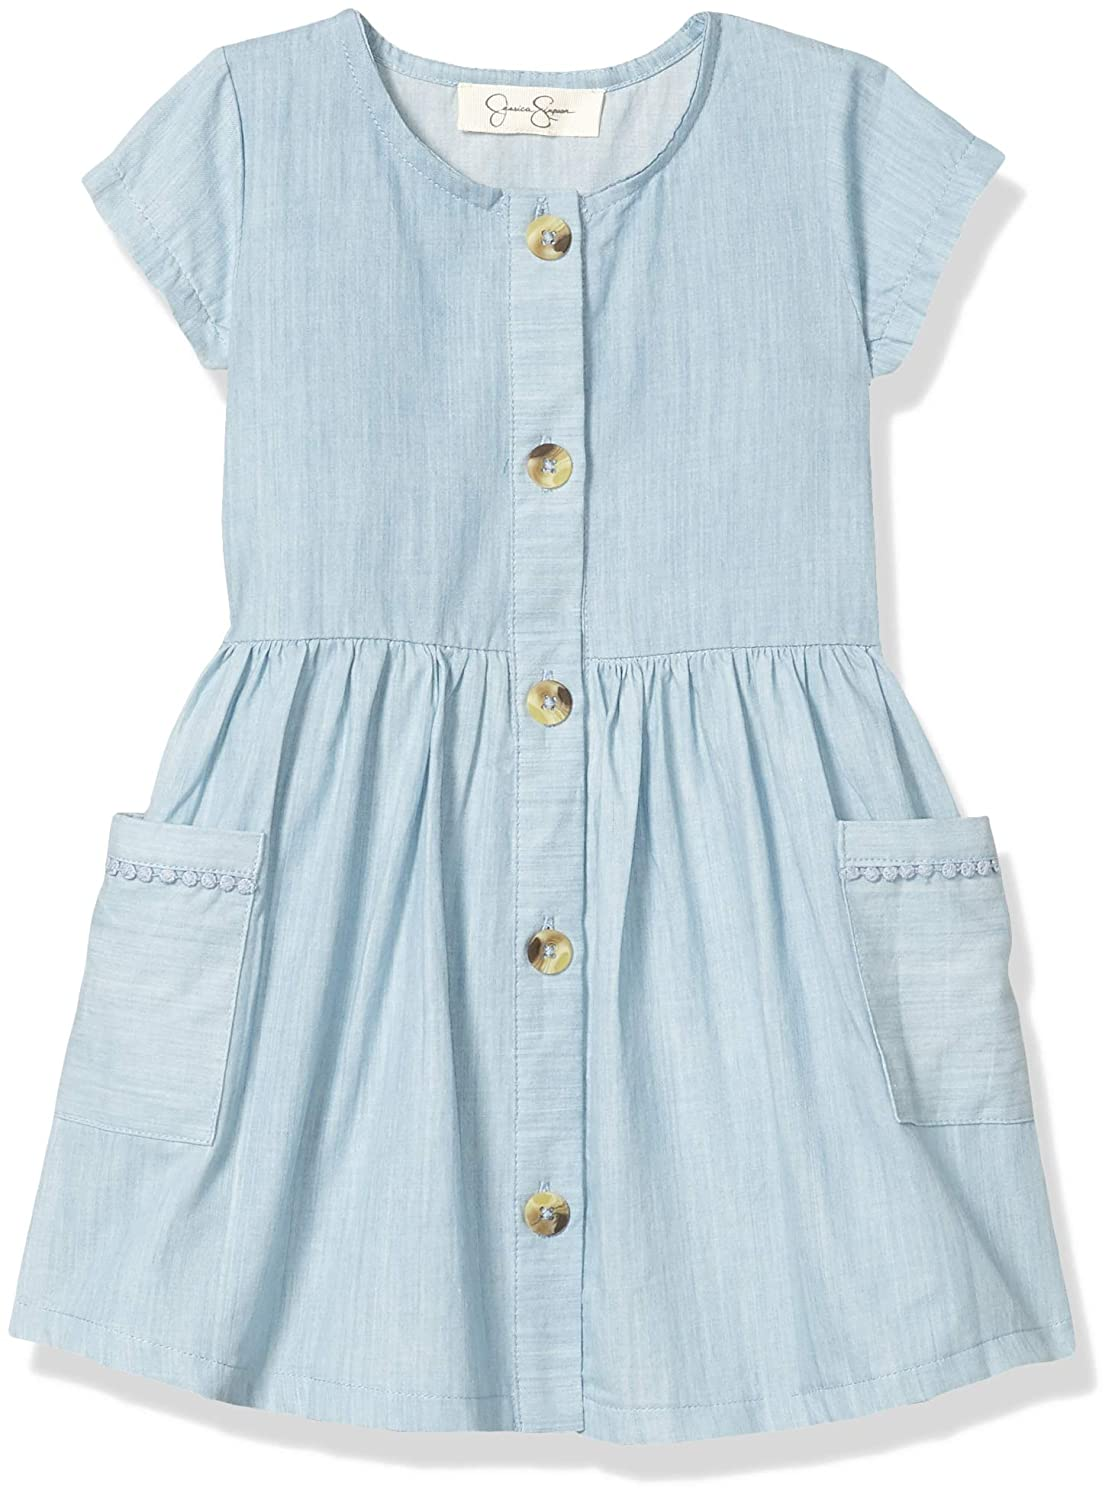 Jessica Simpson Girls Fit and Flare